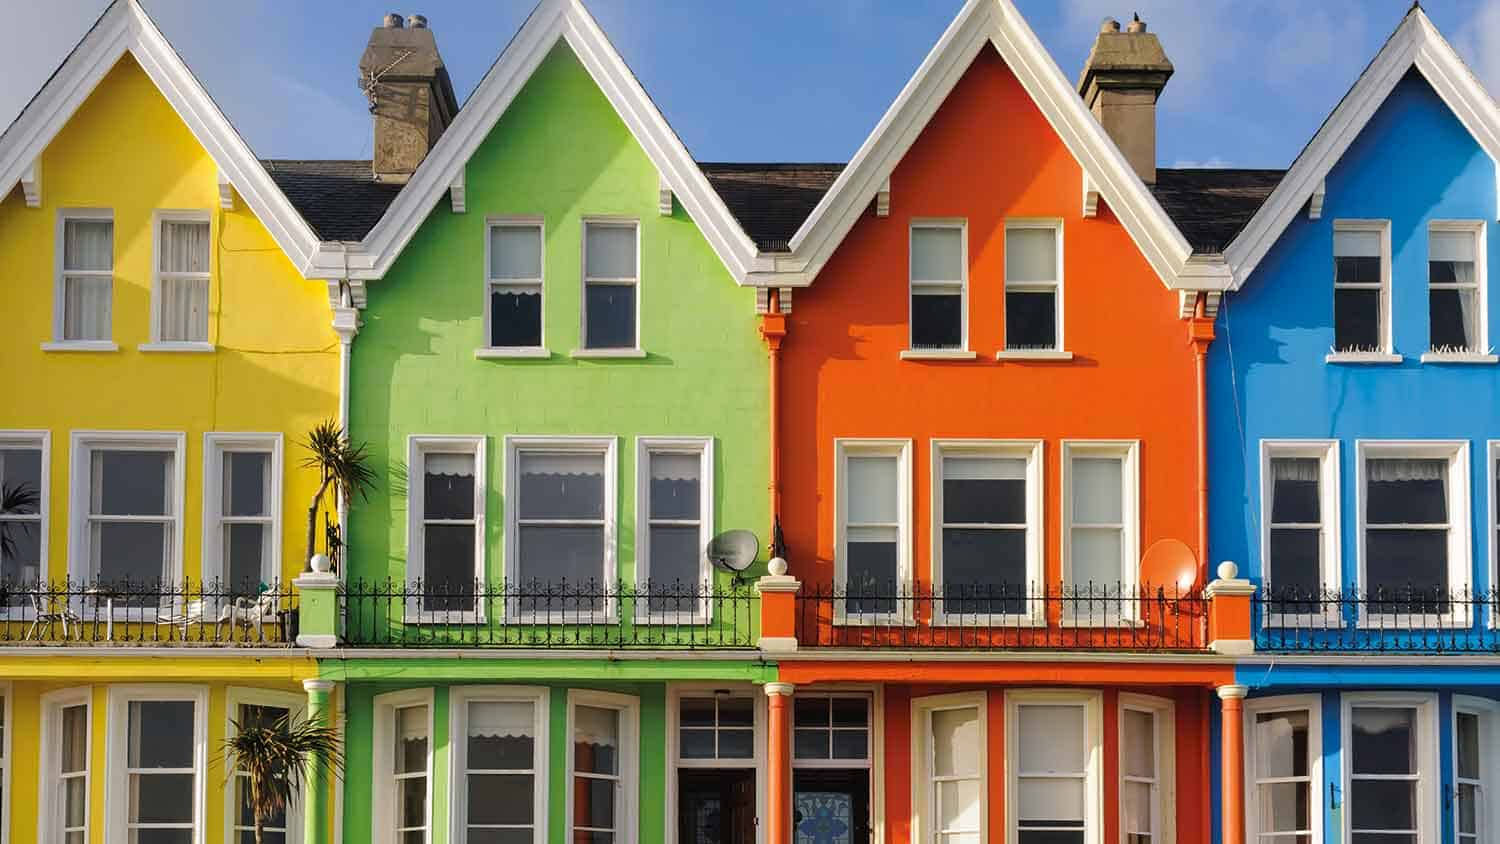 Row of houses painted in bright colours. From left to right they are yellow, green, orange and blue. All against a sunny blue sky